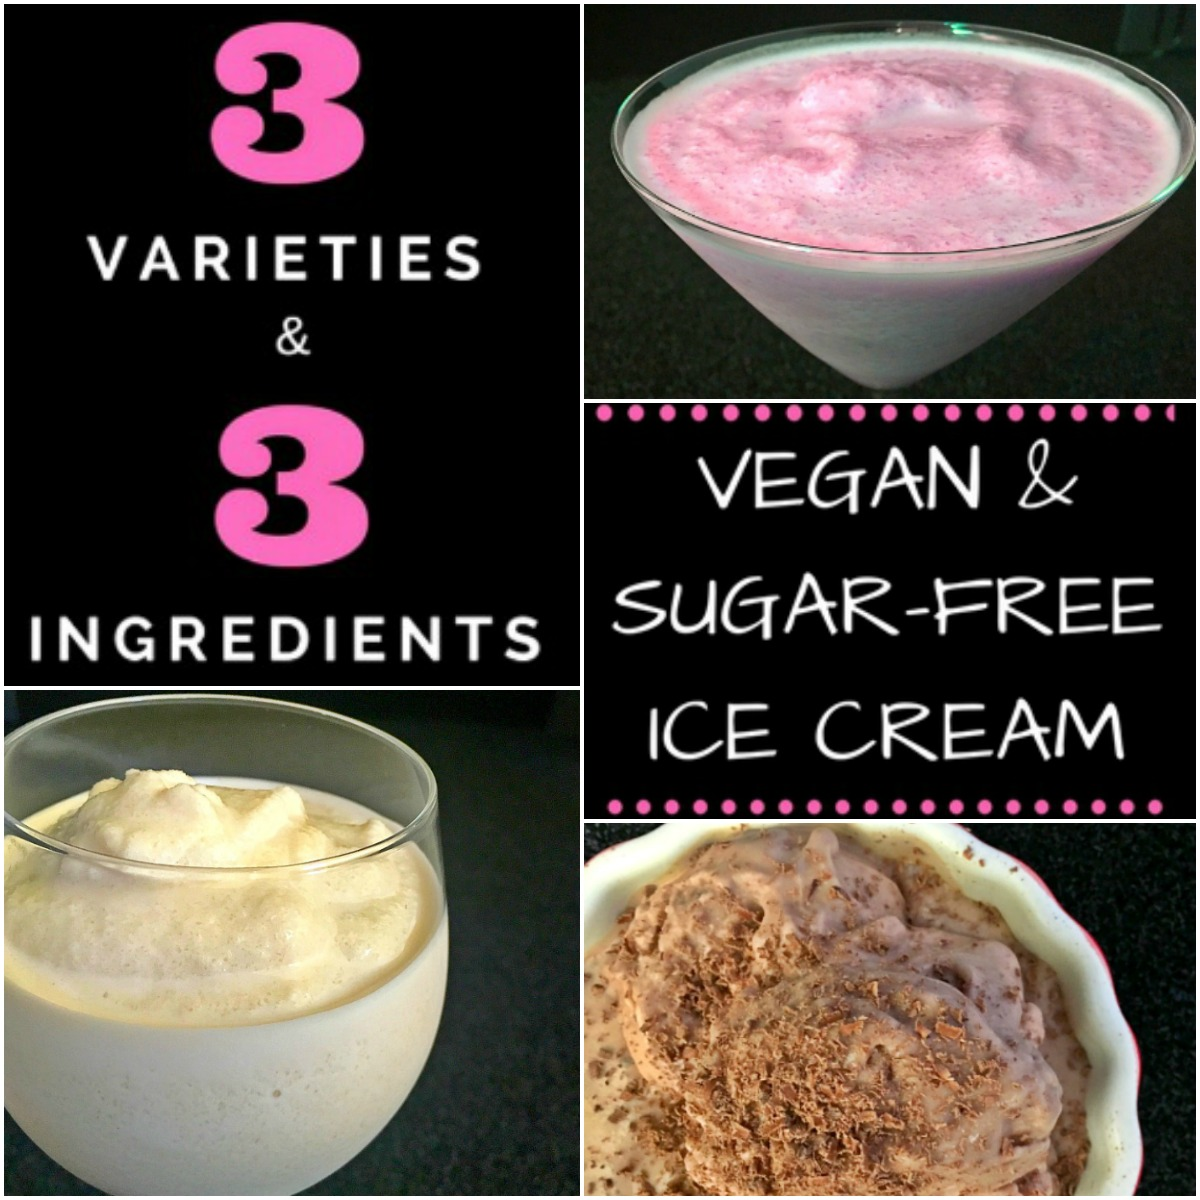 Sugar, Nut, Fruit & Gluten Free, Vegan Ice Cream